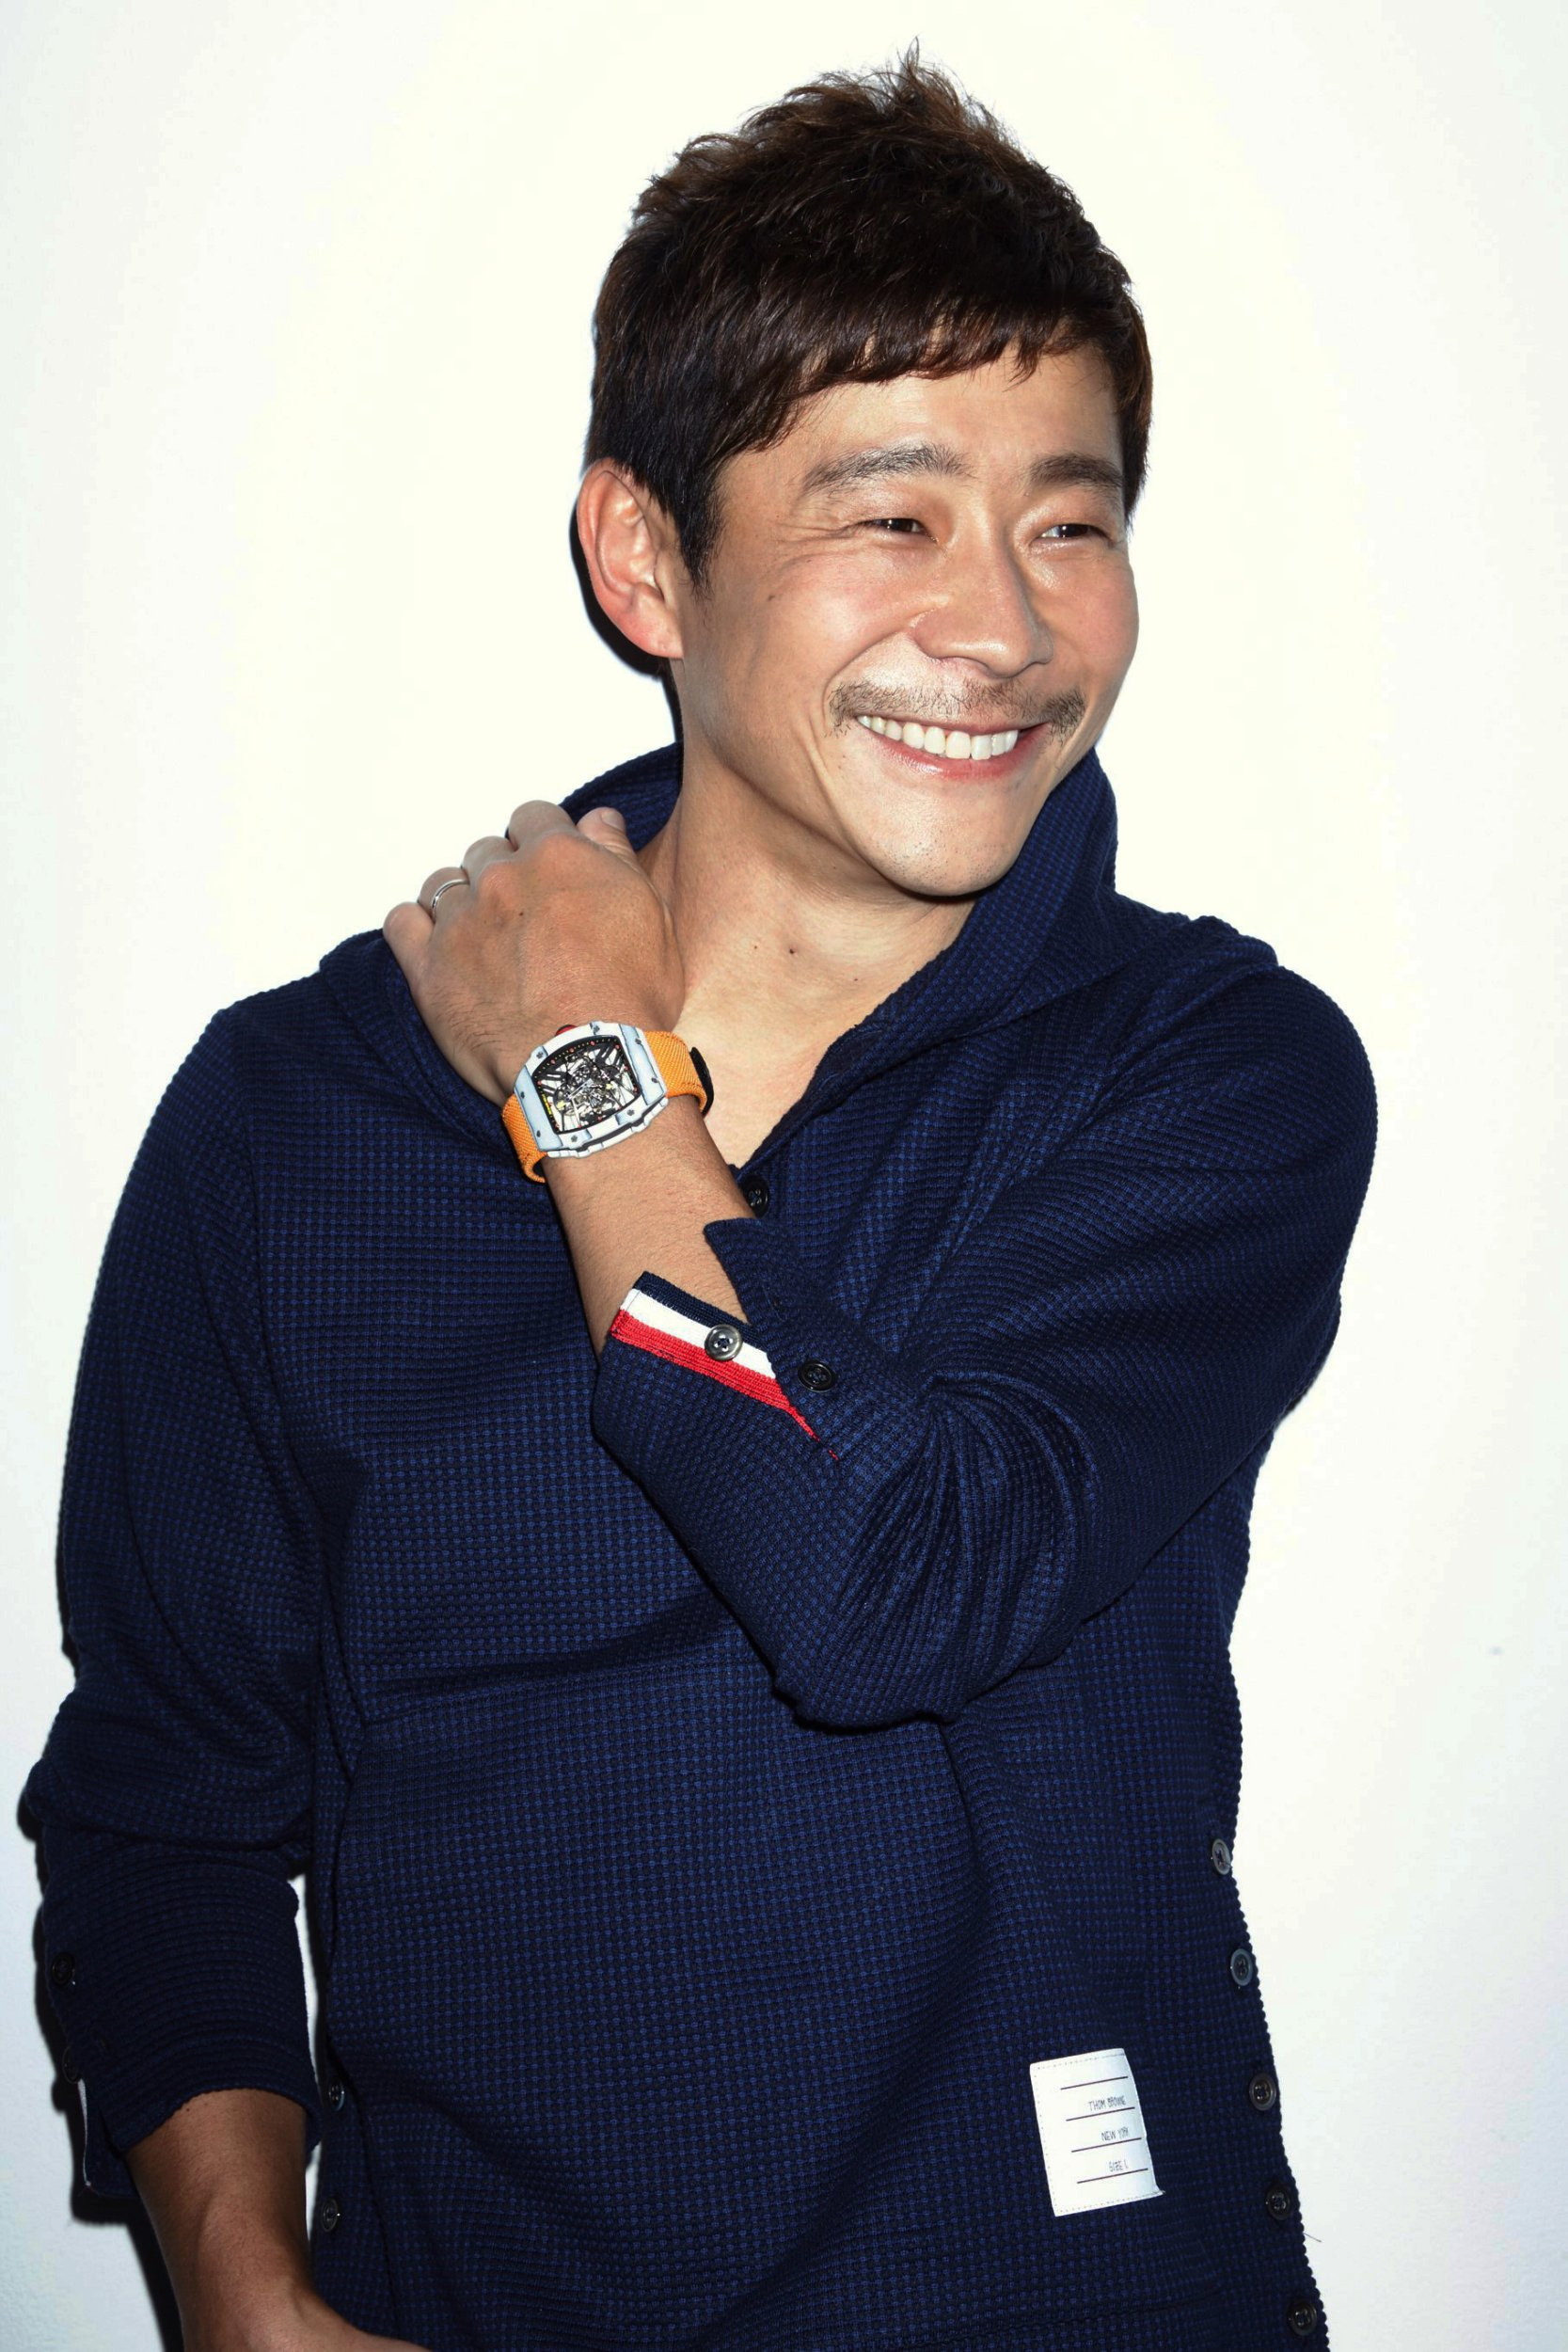 epa07028777 (FILE) - An undated file photo made available on 18 September 2018 shows Yusaku Maezawa, 42, the founder and CEO of Zozo, Japan's largest online fashion retailer. Aerospace company SpaceX announced on 17 September 2018 that it will take Yusaku Maezawa into space to fly around the moon, making this Japanese billionaire the first space tourist to do so. EPA/JIJI PRESS/START TODAY JAPAN OUT EDITORIAL USE ONLY/ MANDATORY CREDIT NO ARCHIVES